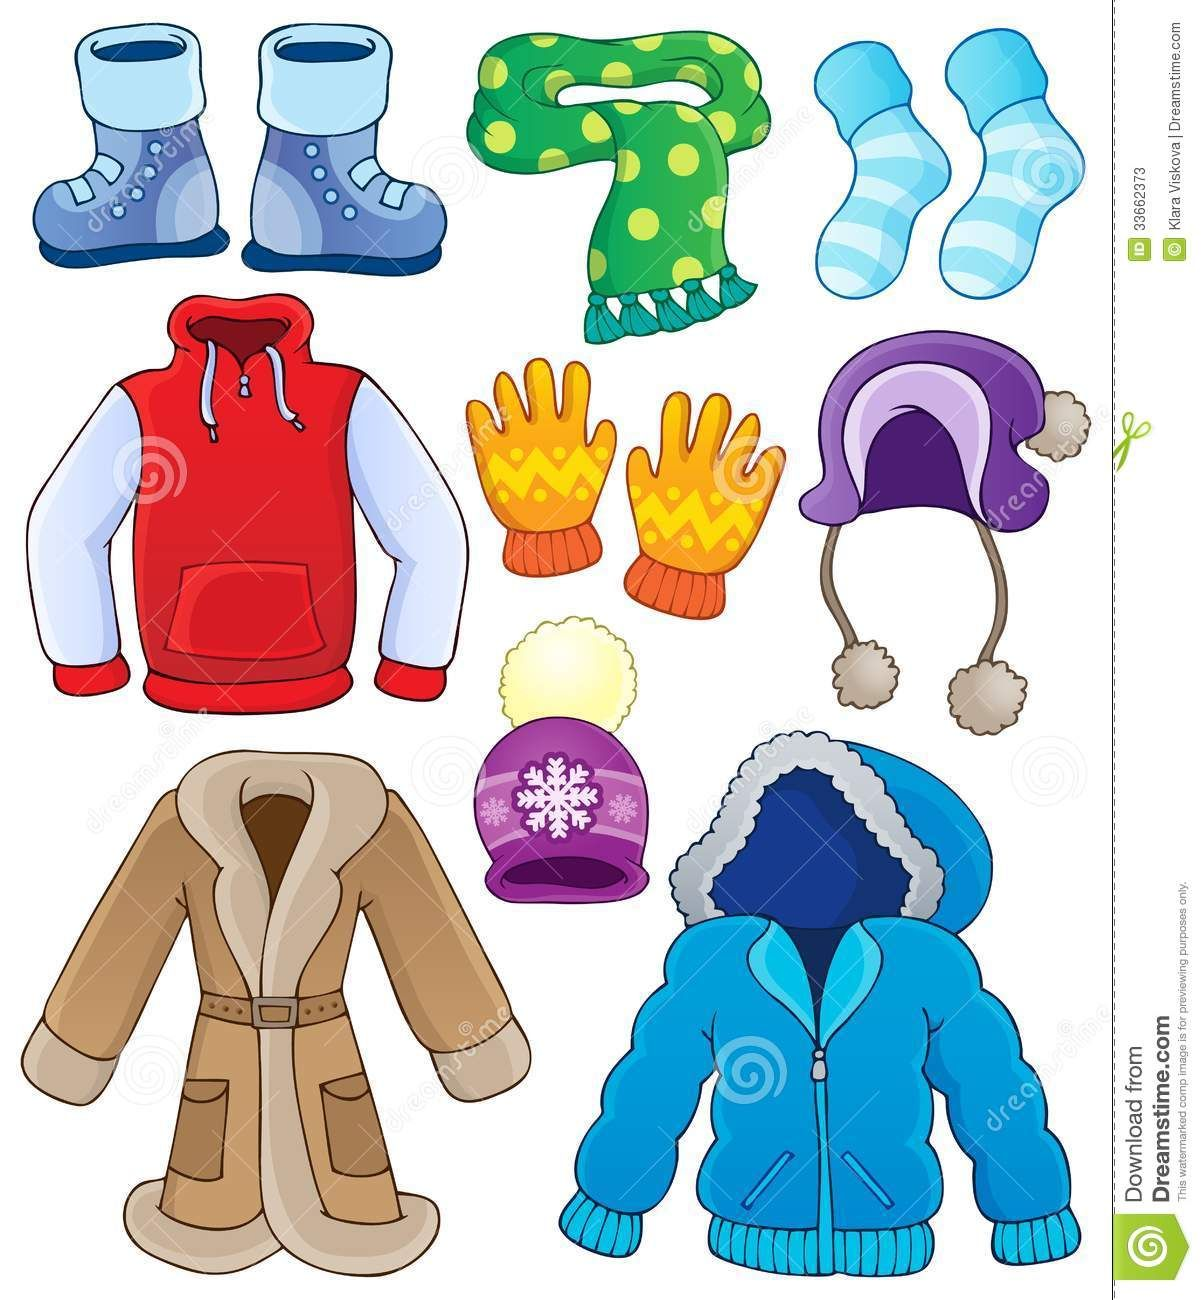 Mittens clipart cold weather clothes. Clip art winter clothin